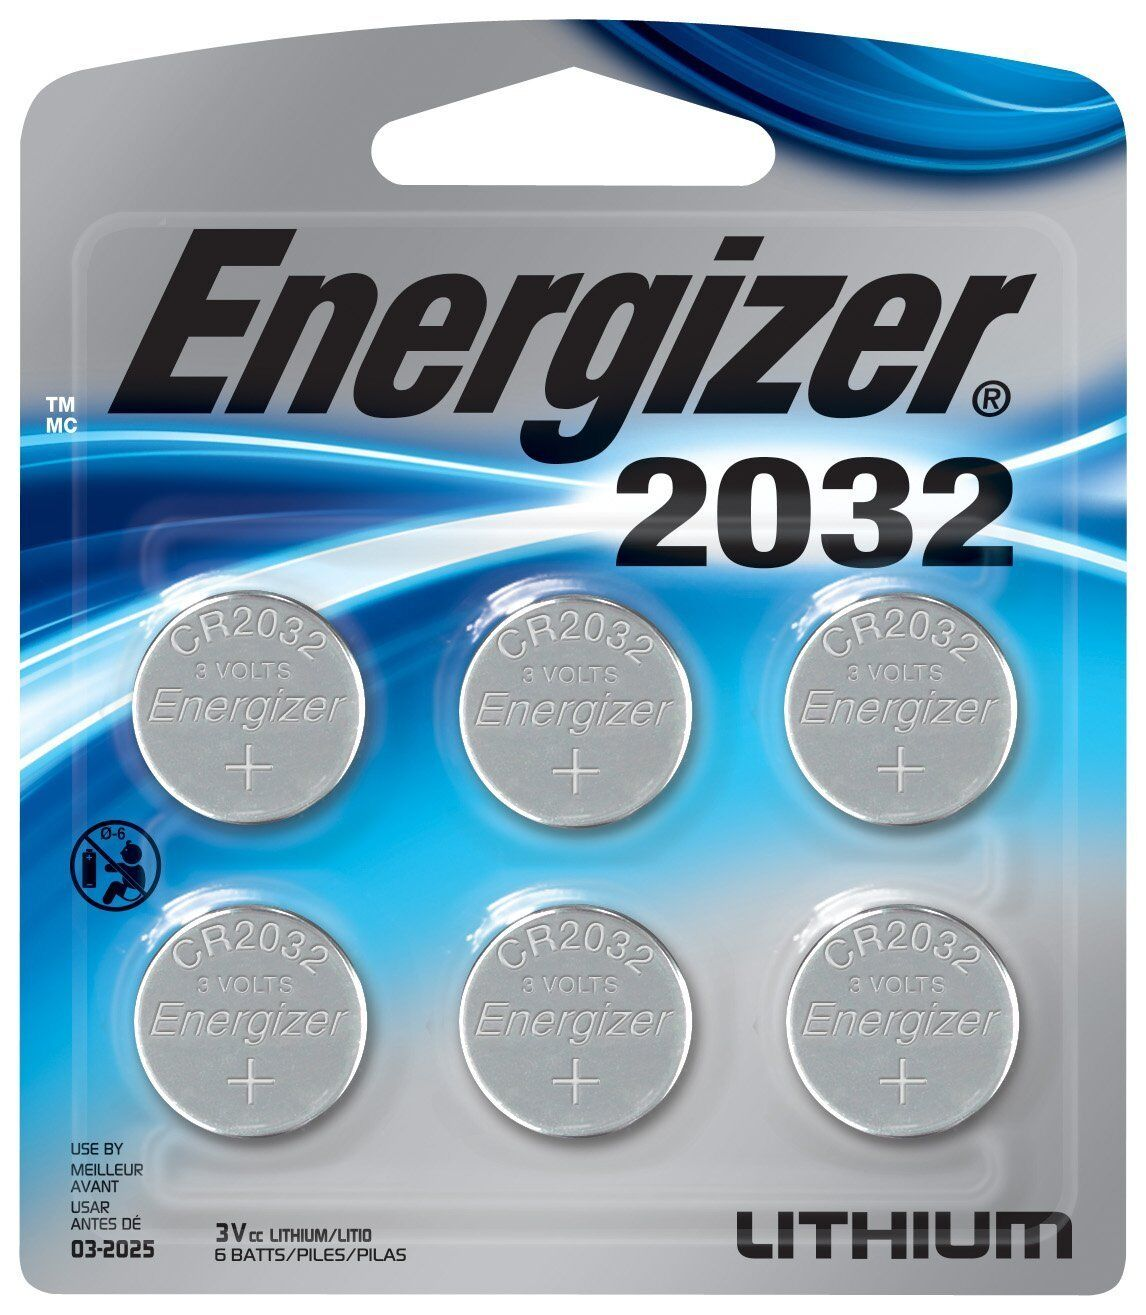 Energizer - Cr2032 Batteries  - Silver